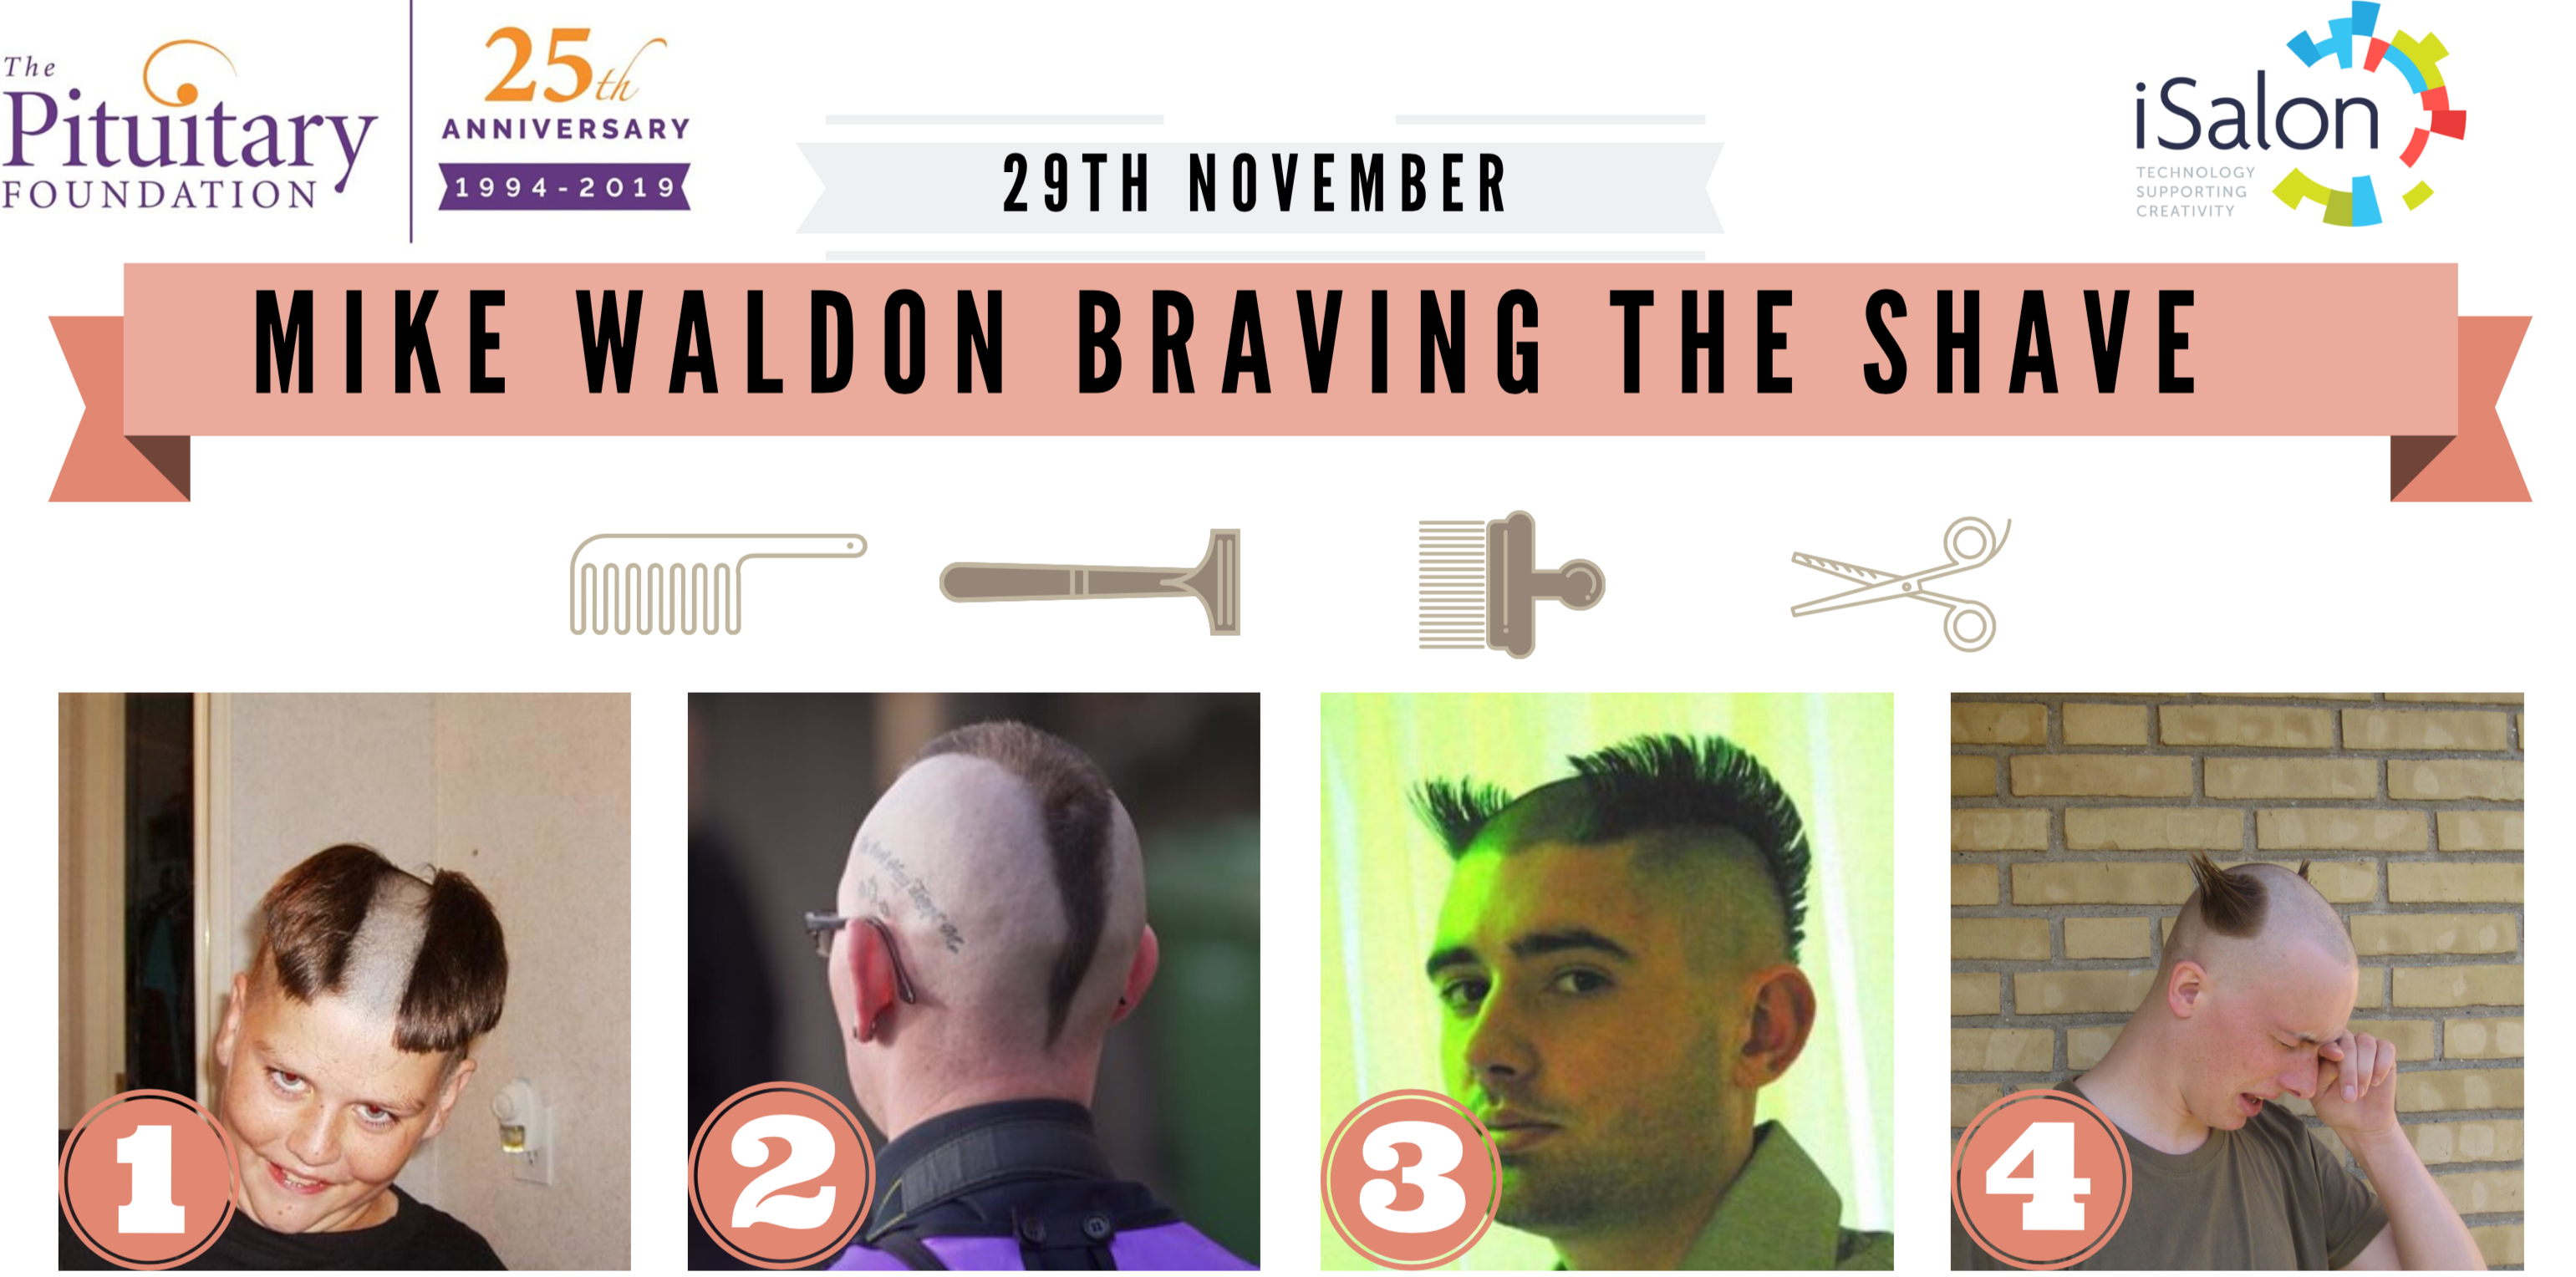 Mike Waldon is braving the shave